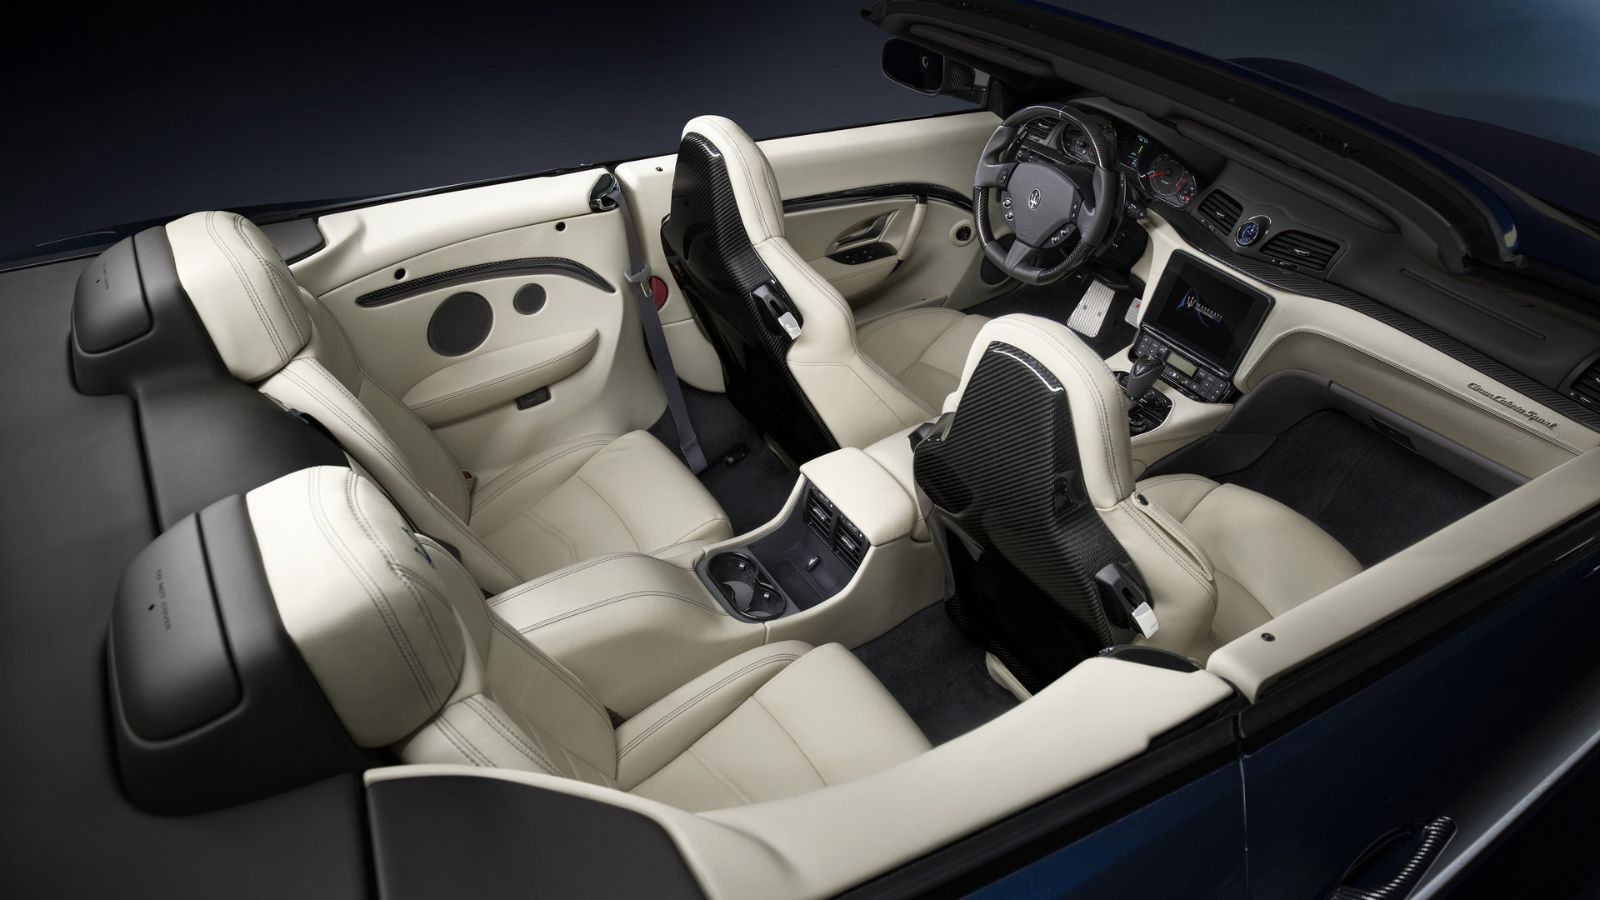 Maserati GranCabrio view from above, interiors and seats